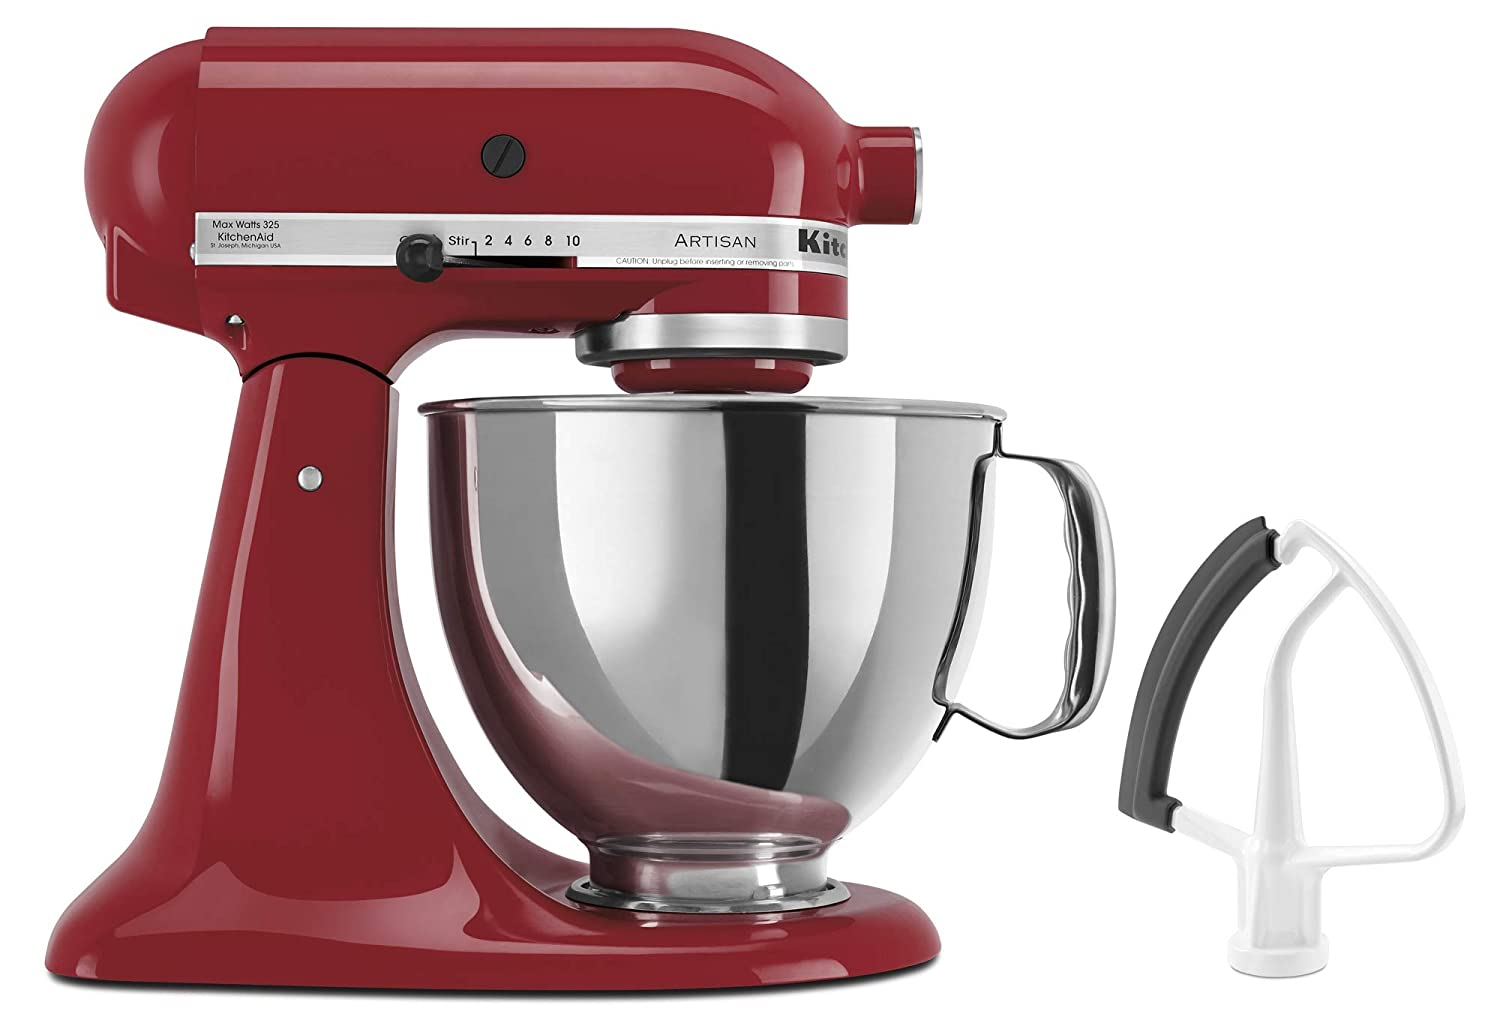 KitchenAid KSM150FEER Artisan Bundle Stand Mixers, 5 quart, Empire Red